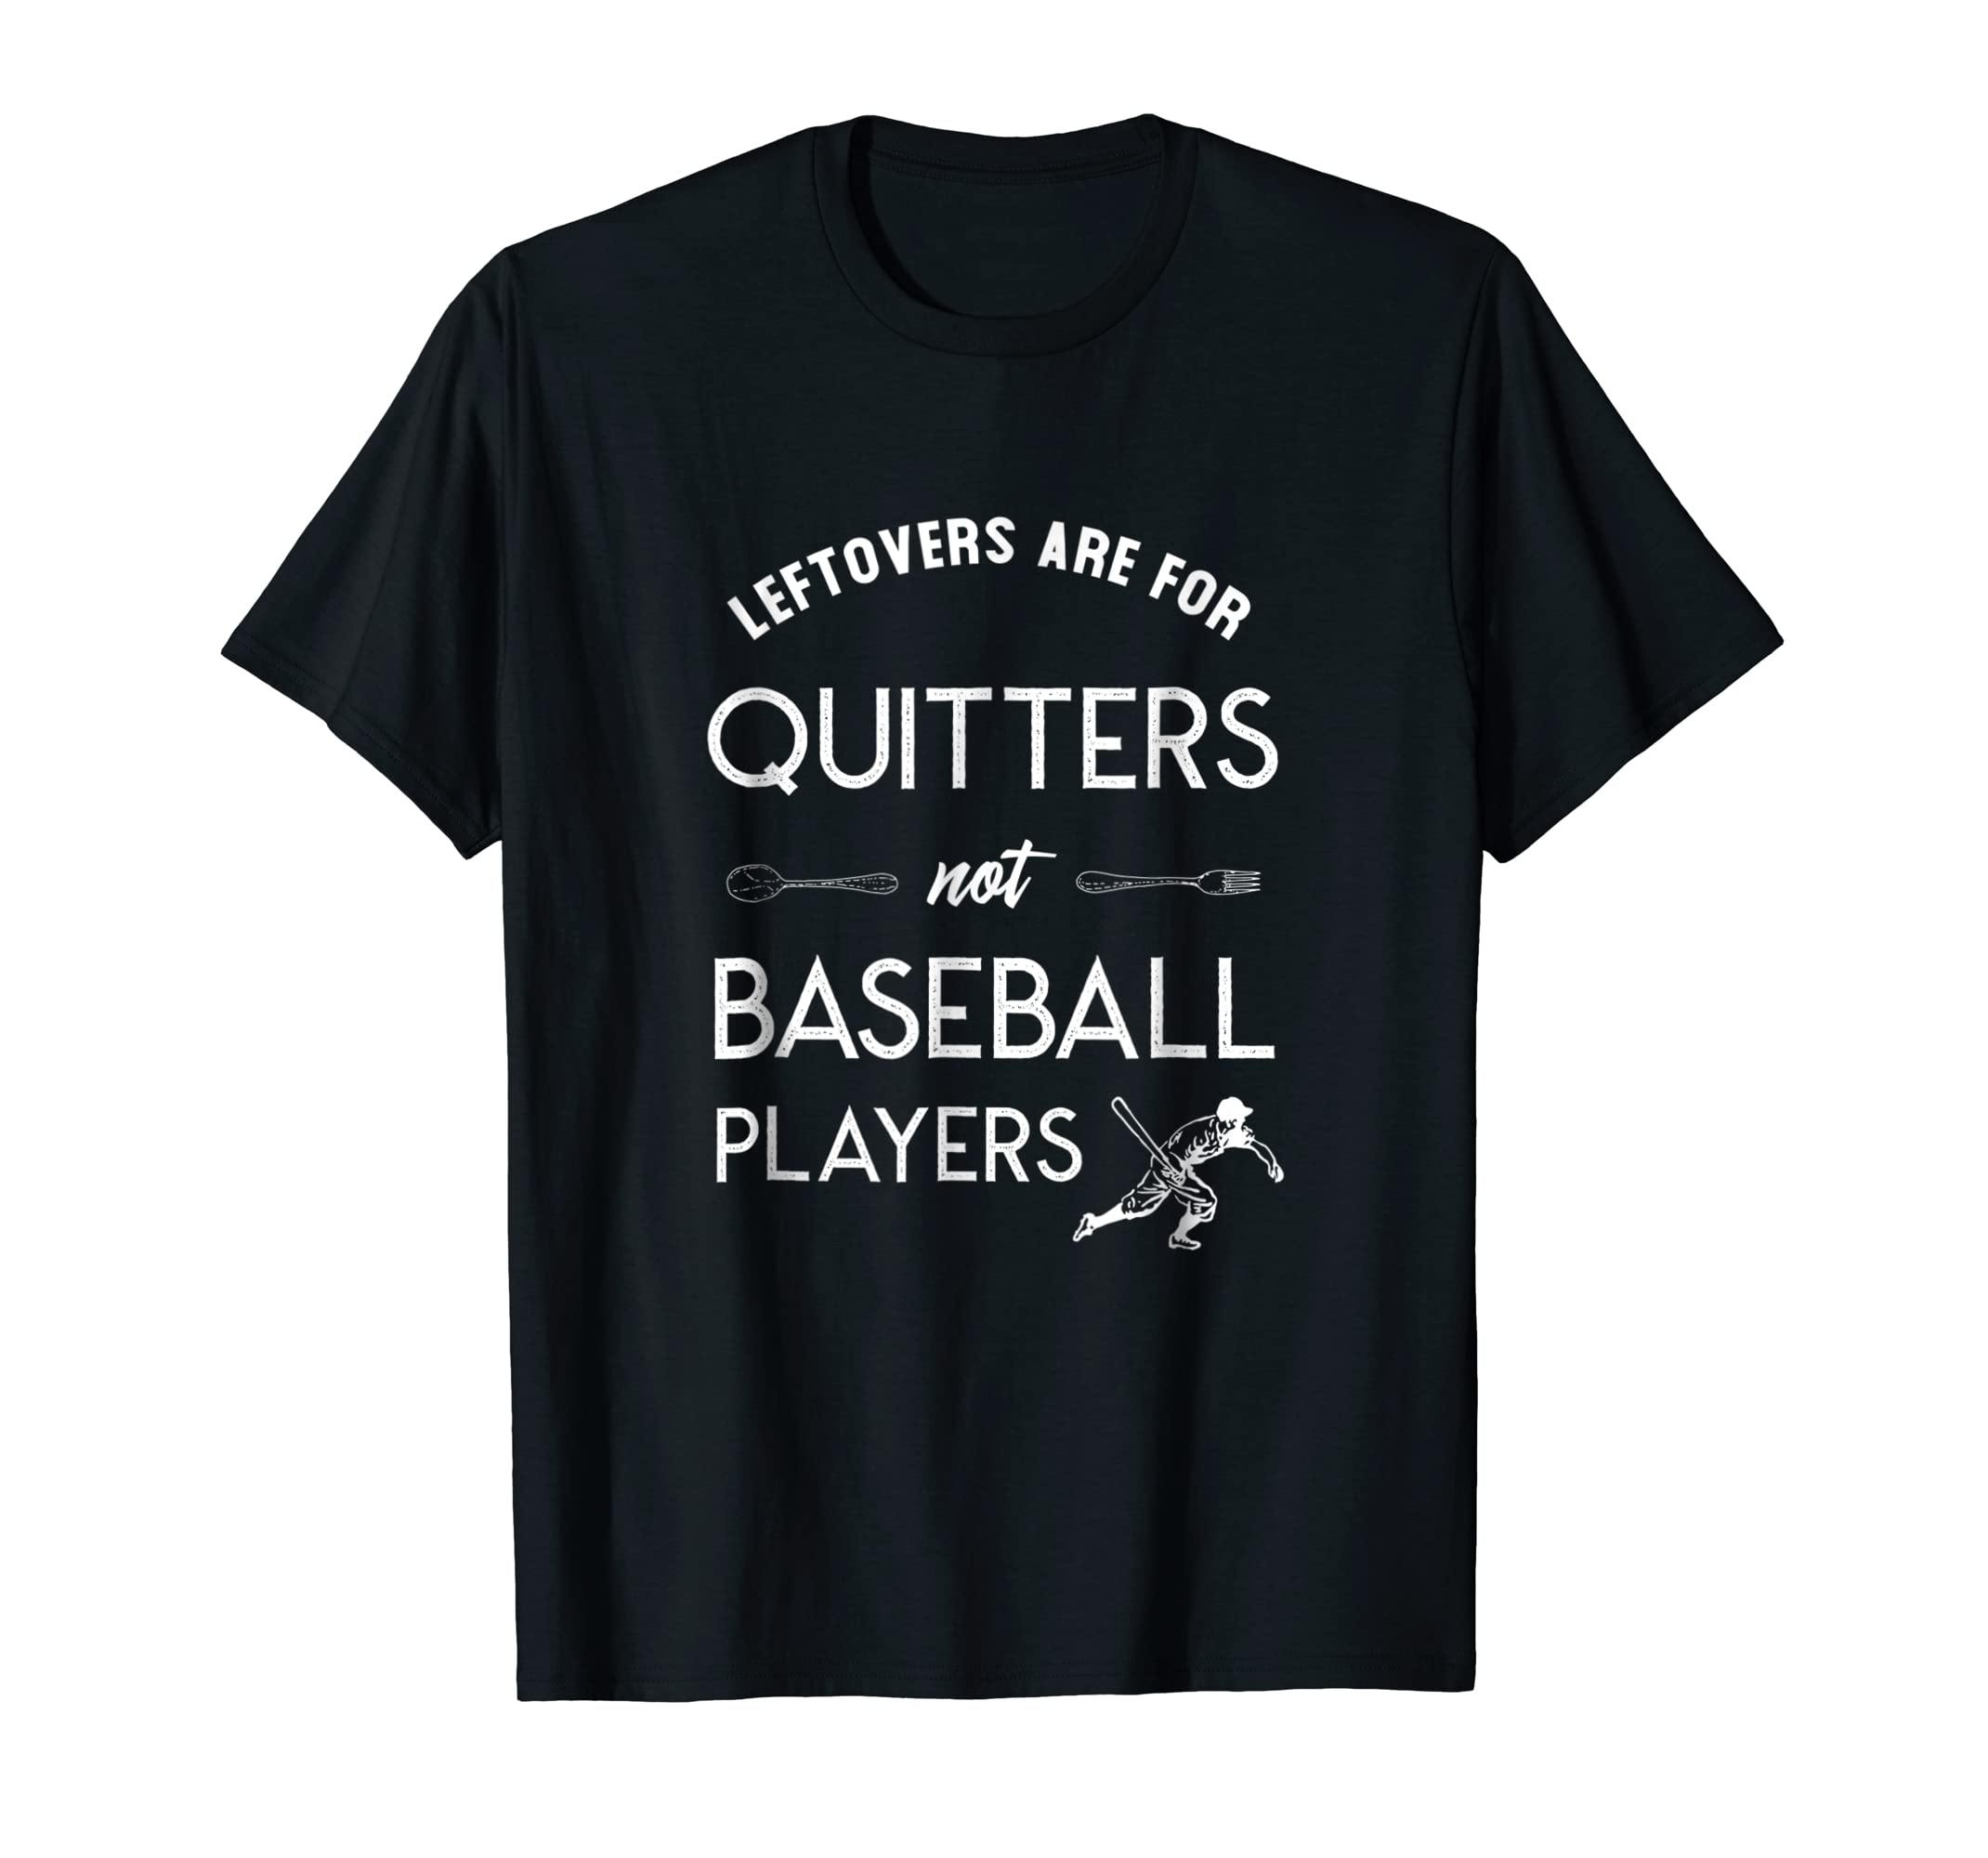 e2456bc60 Amazon.com: Leftovers are for Quitters not Baseball Players TShirt: Clothing